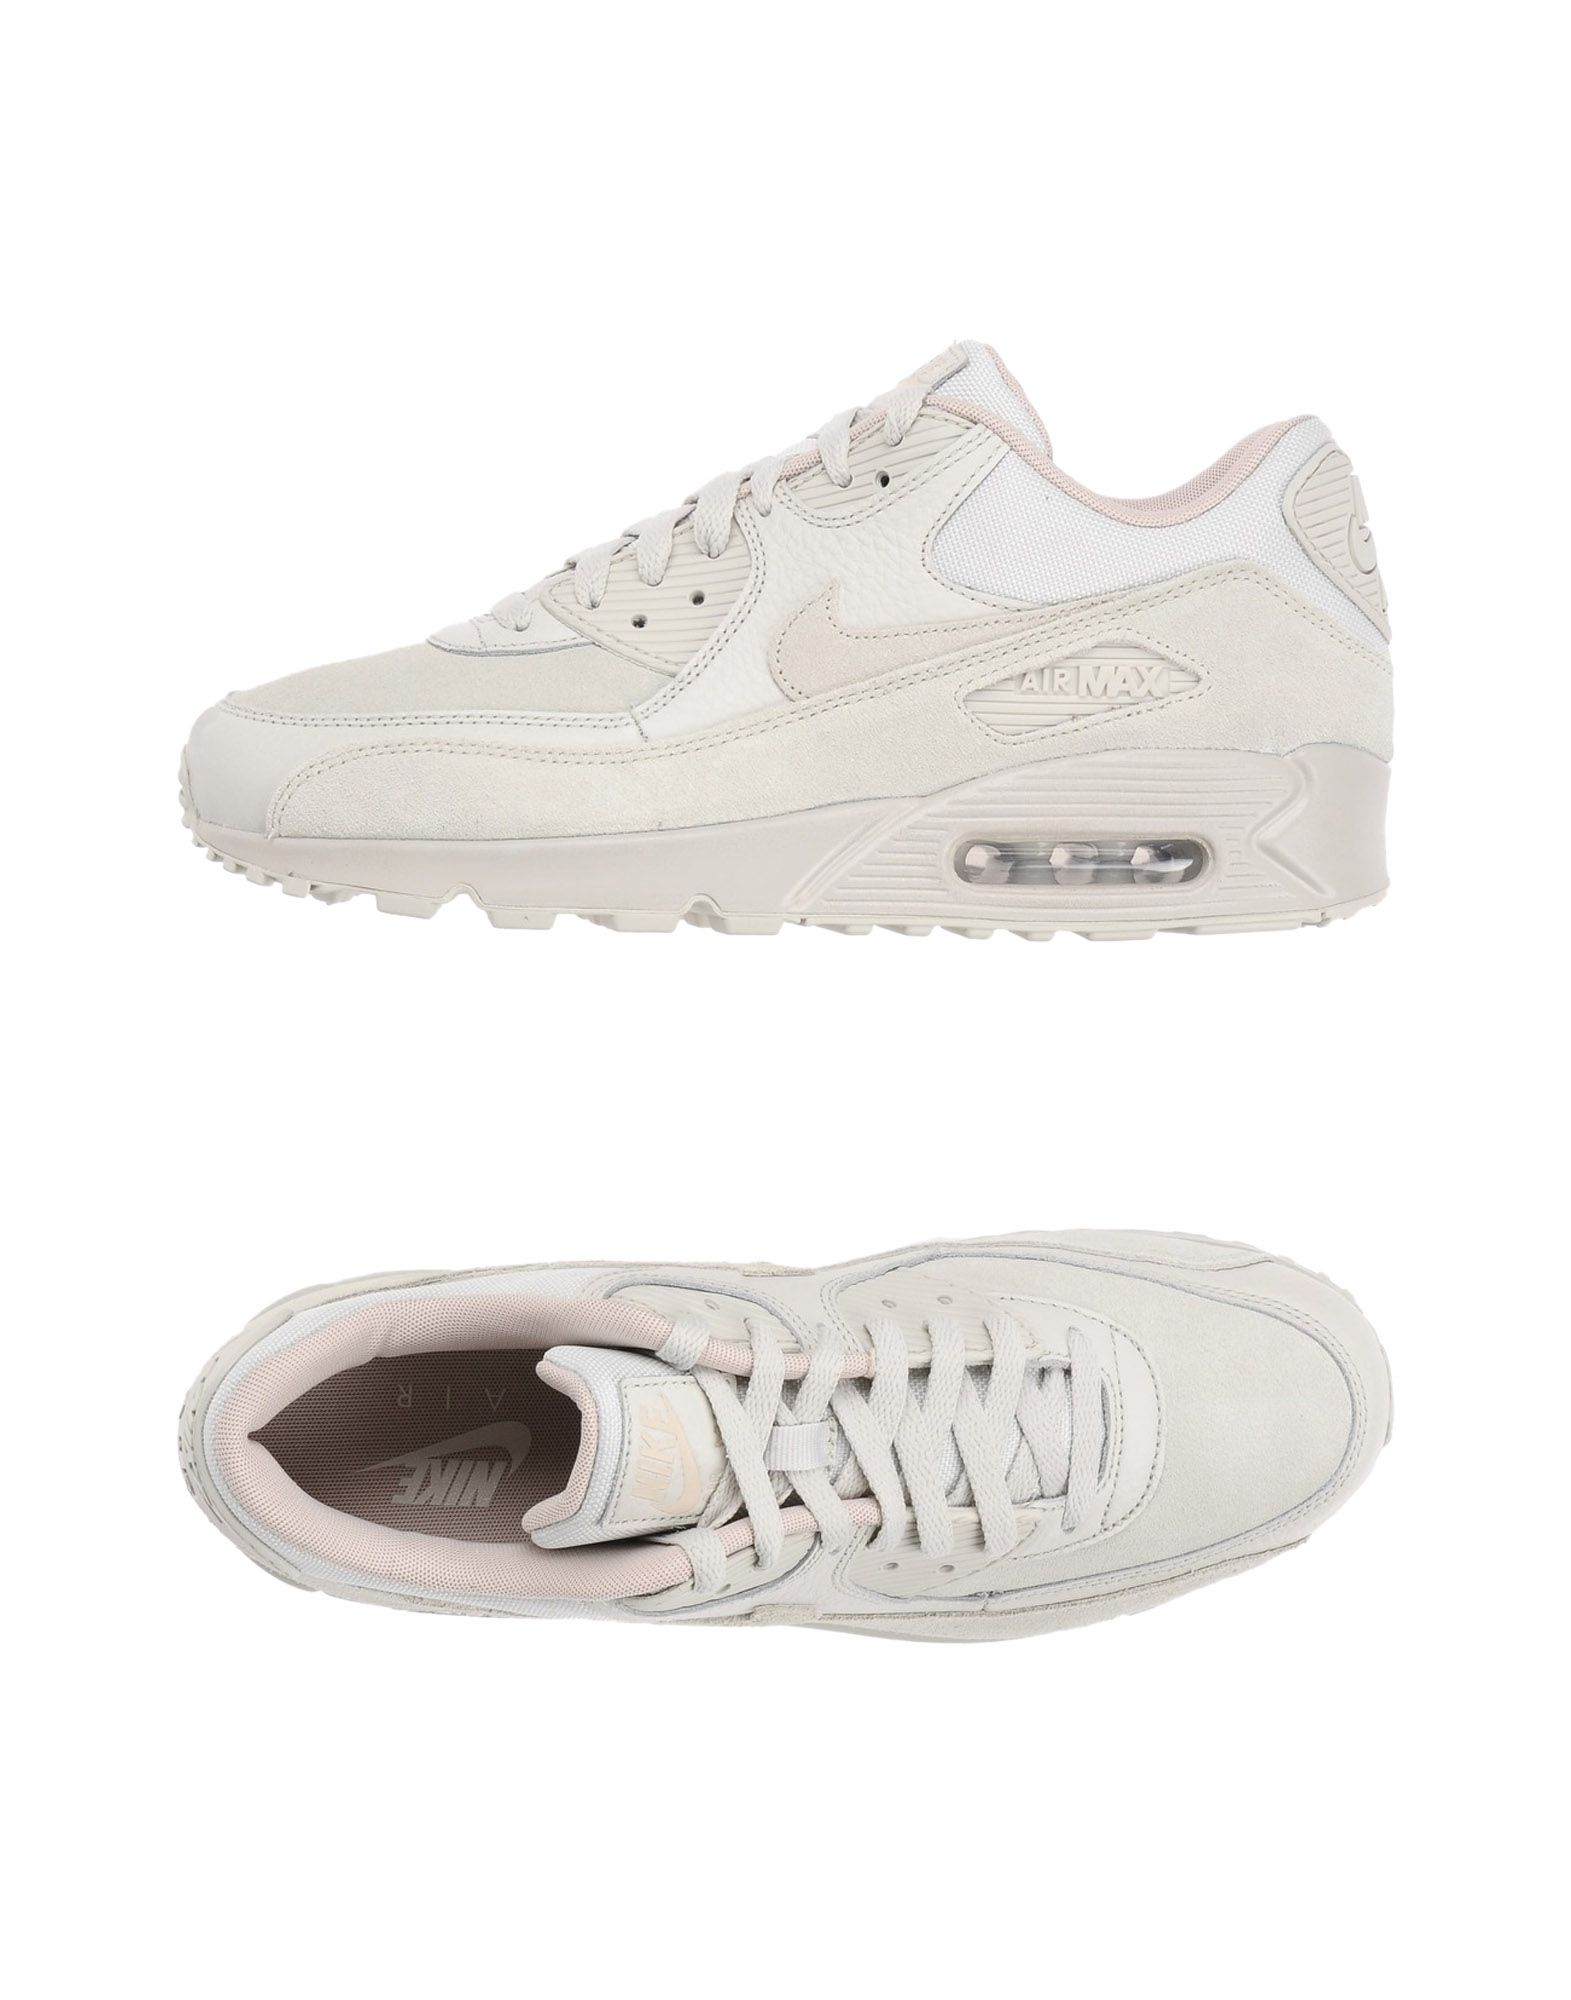 Sneakers Nike  Air Max 90 Premium - Uomo - Acquista online su